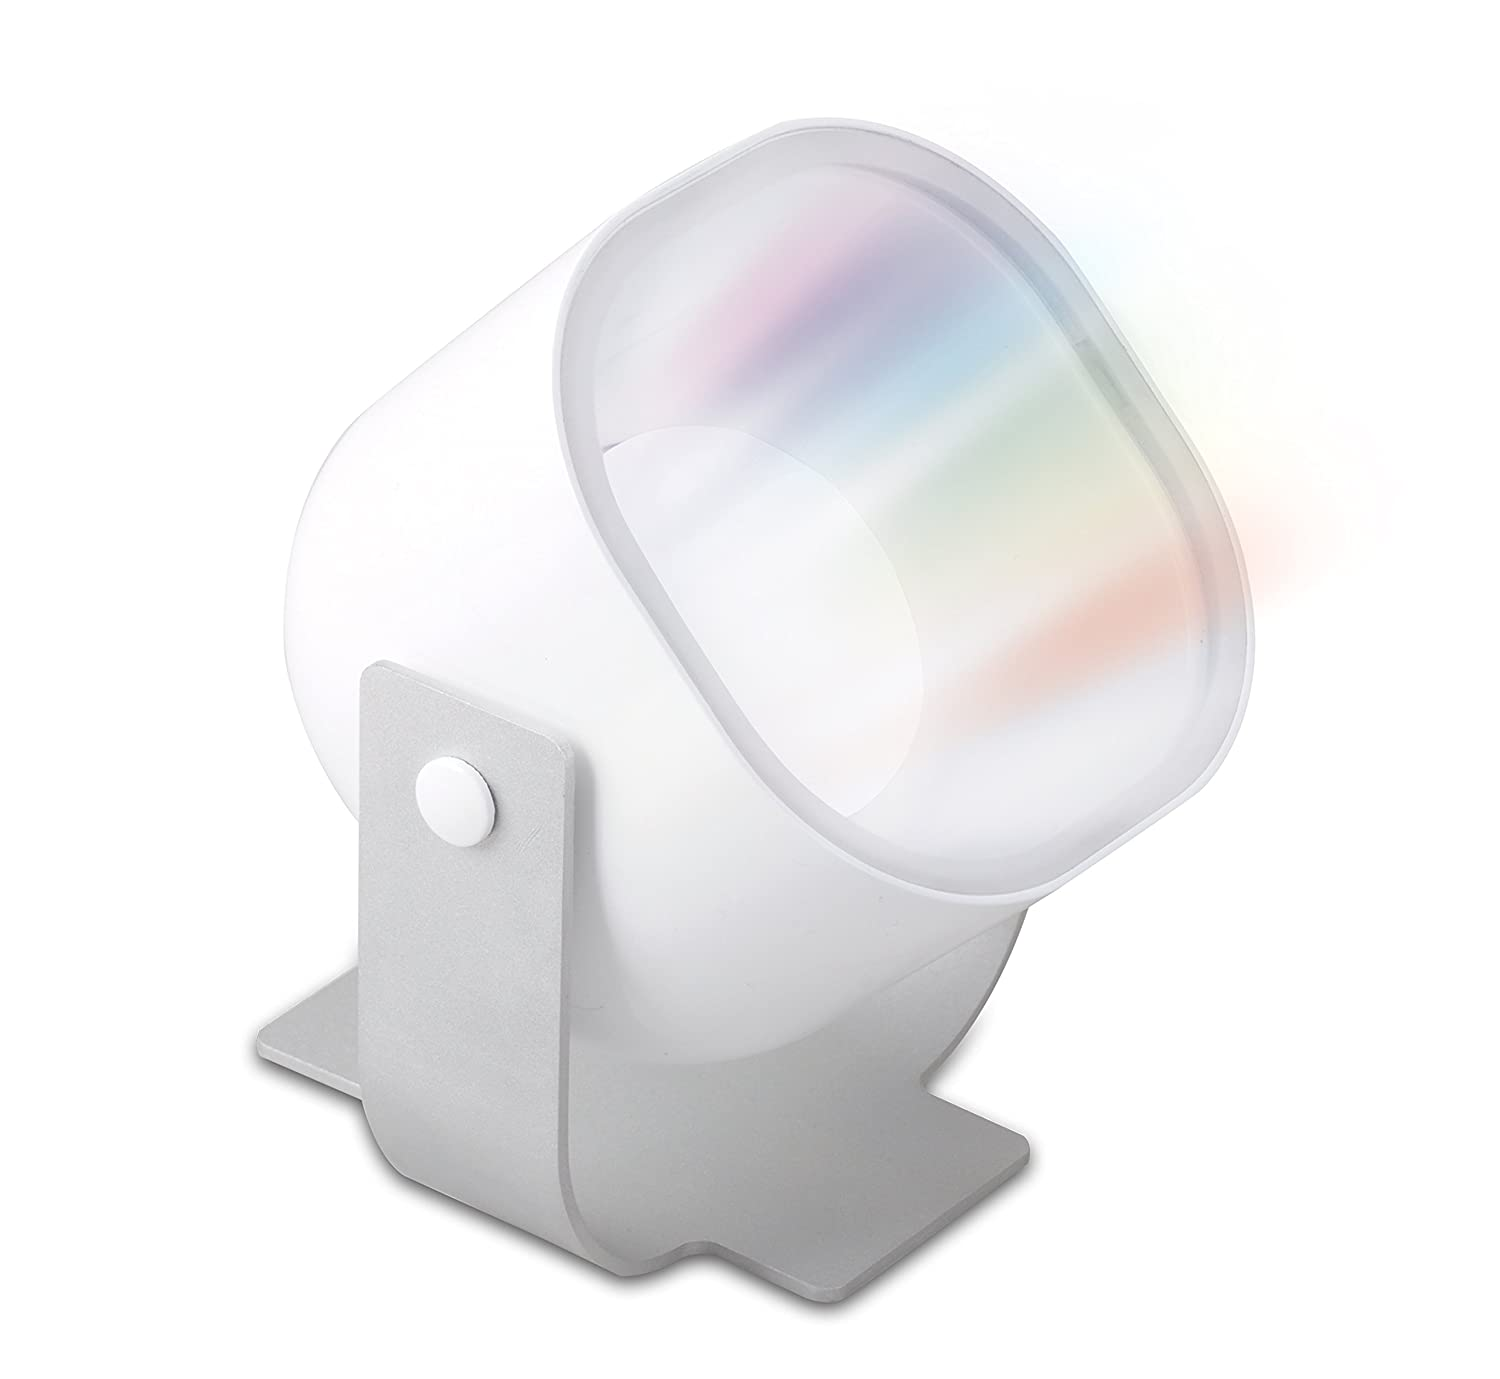 iDual ES06350G Lilac Portable Projector Light with Remote Control Capabilities Tao